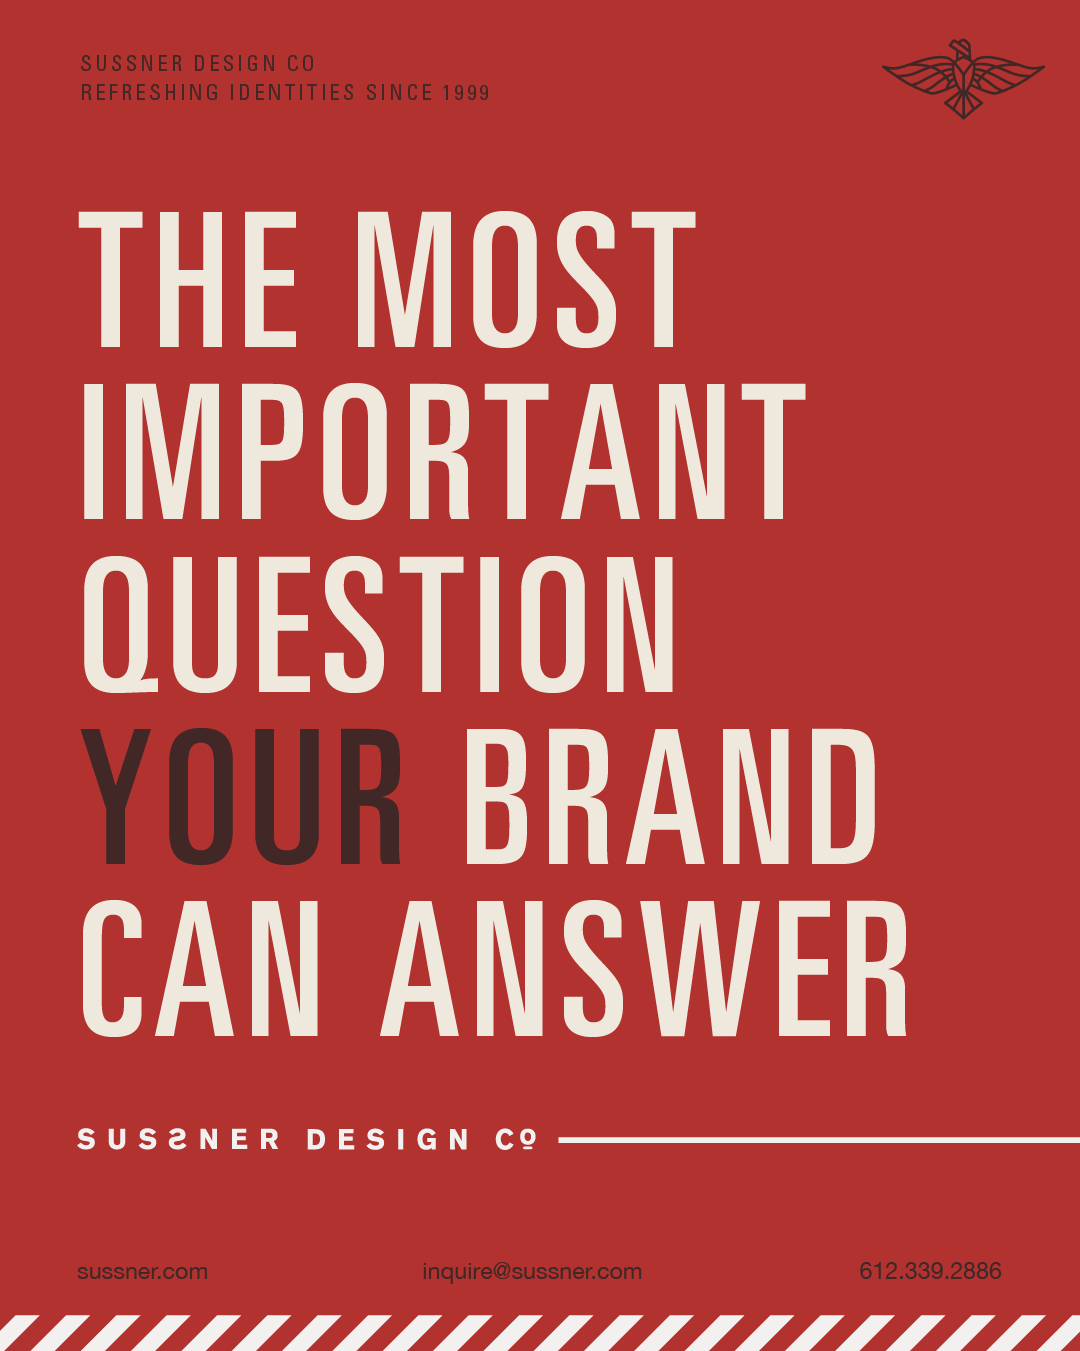 How does your product or service solve your customer's problem?